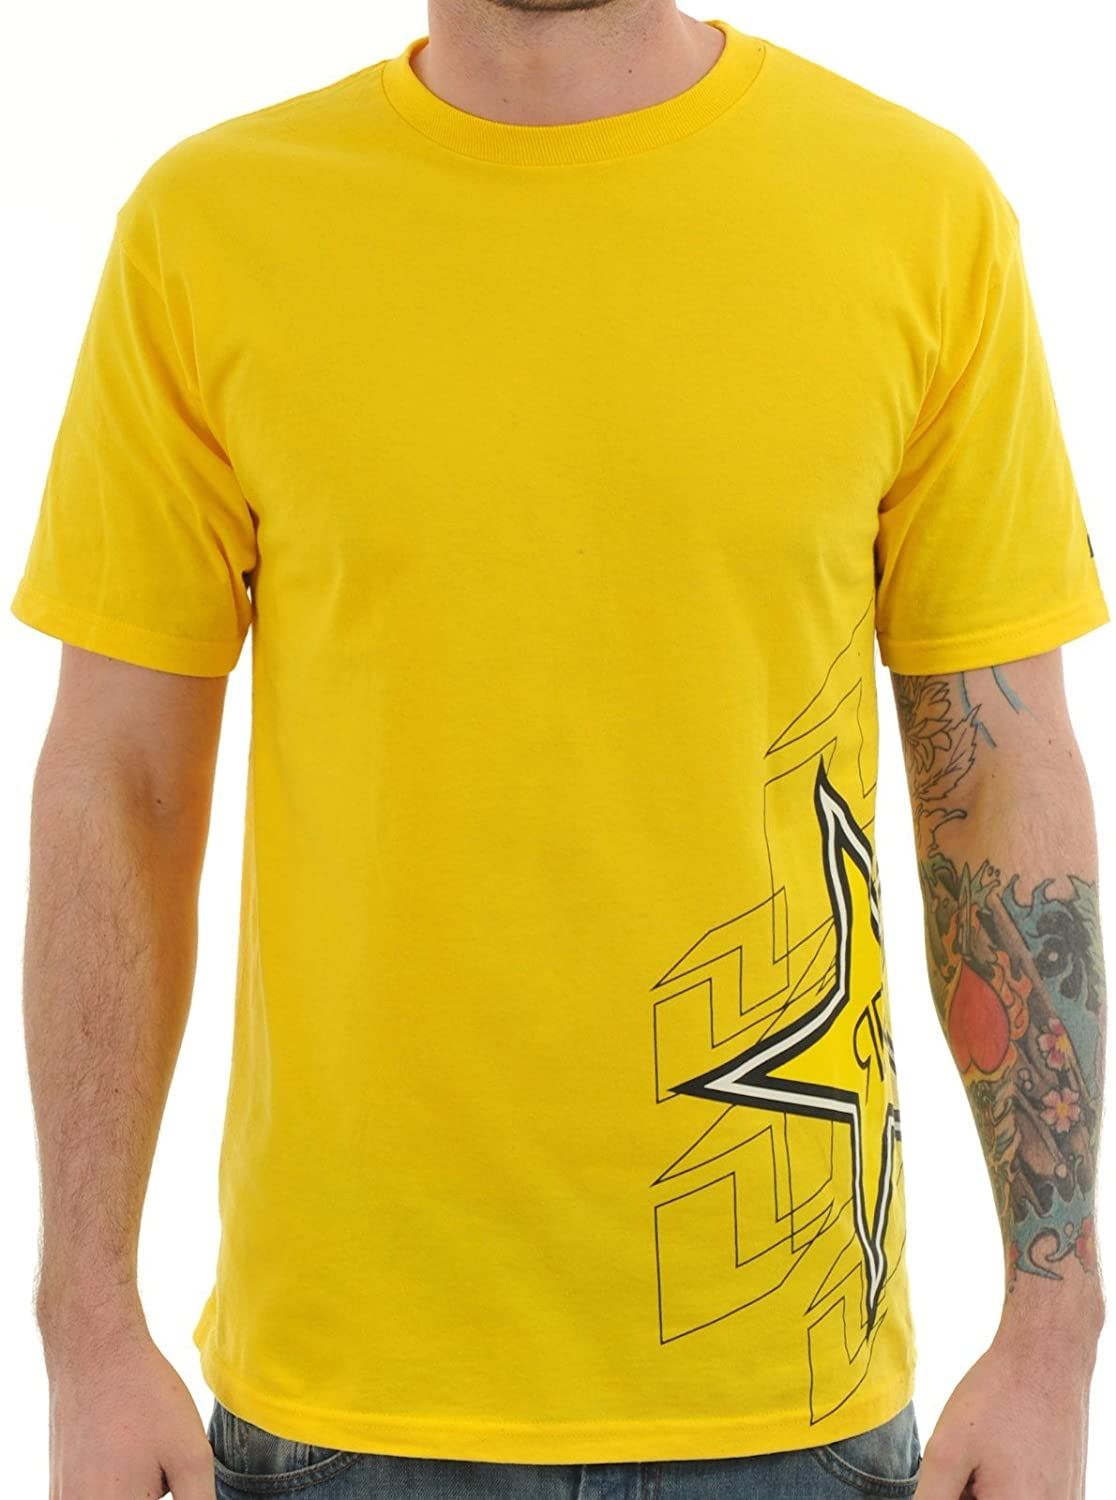 ONE INDUSTRIES OFFICIAL ROCKSTAR ENERGY YOUTH BOYS KIDS GRAVITY T SHIRT TEE NEW